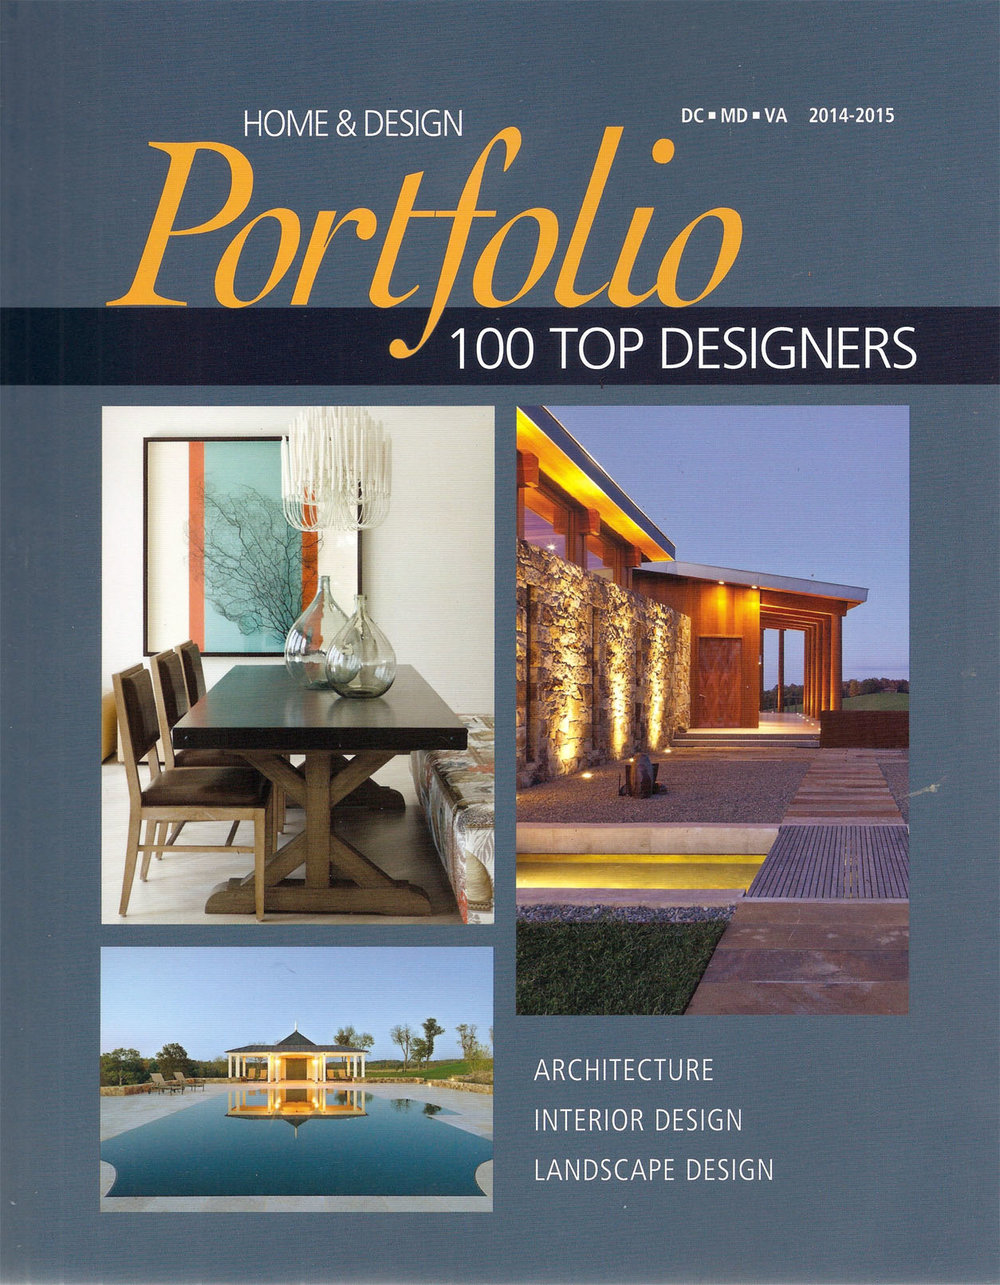 Home & Design      Portfolio   2014-15          100 Top Designers